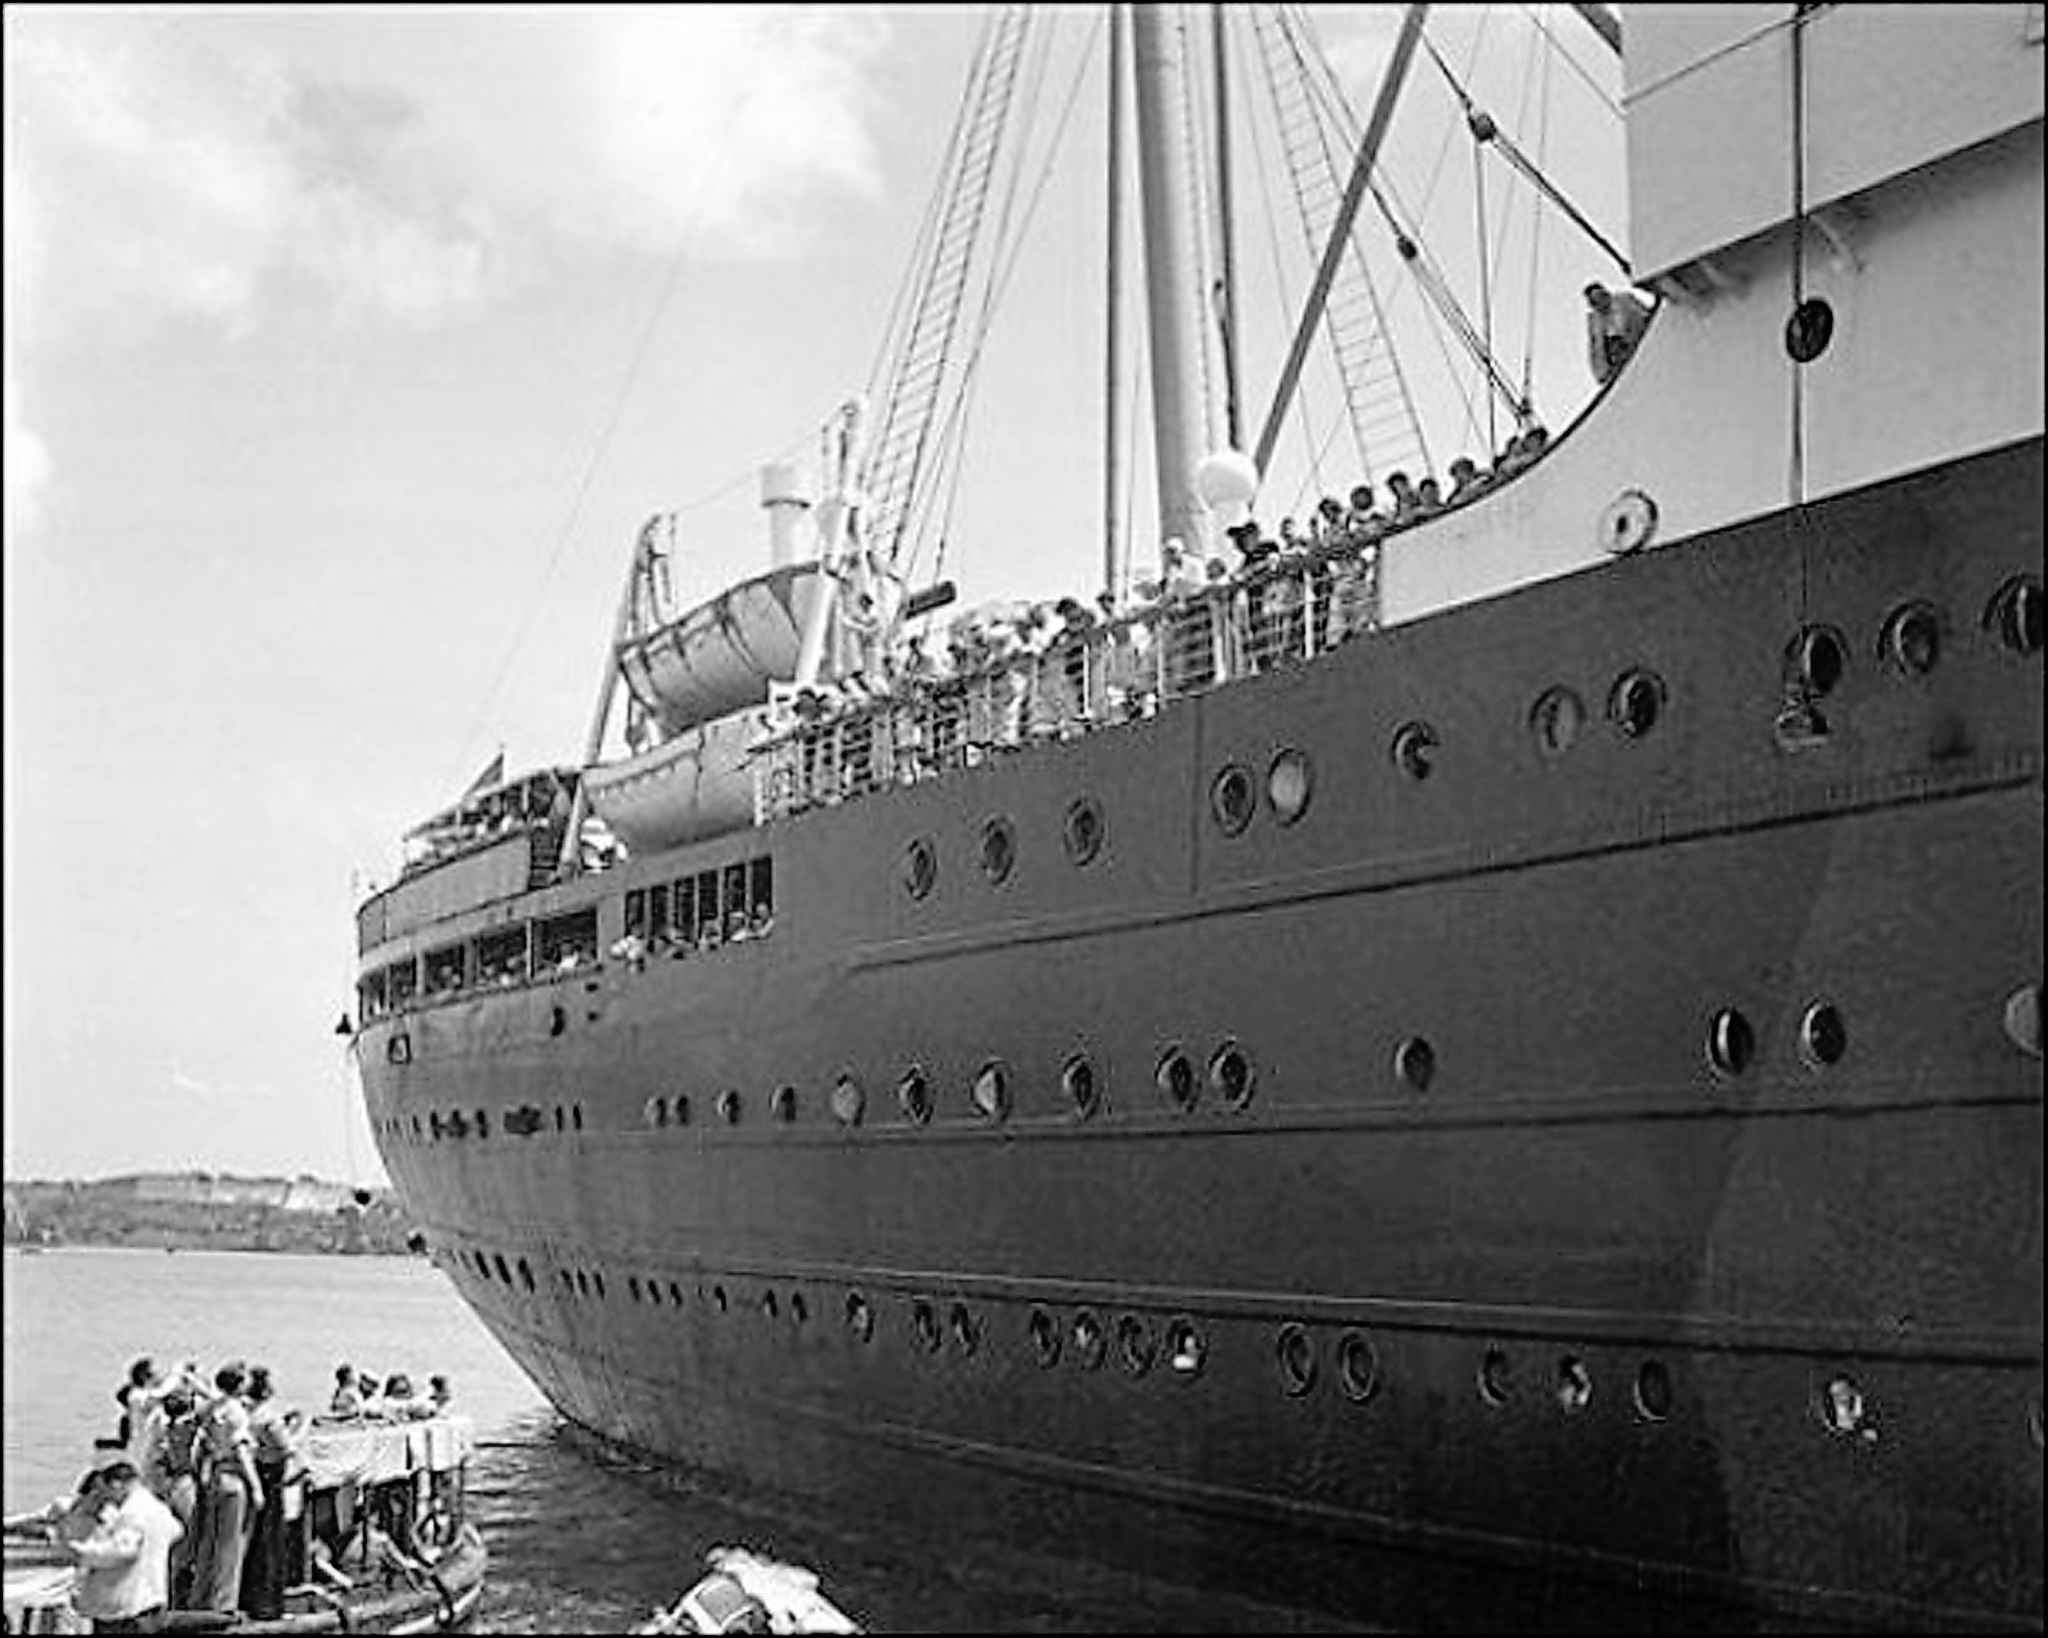 The MS St. Louis was denied entry into Cuba, the United States and Canada in 1939. (The Canadian Press files)